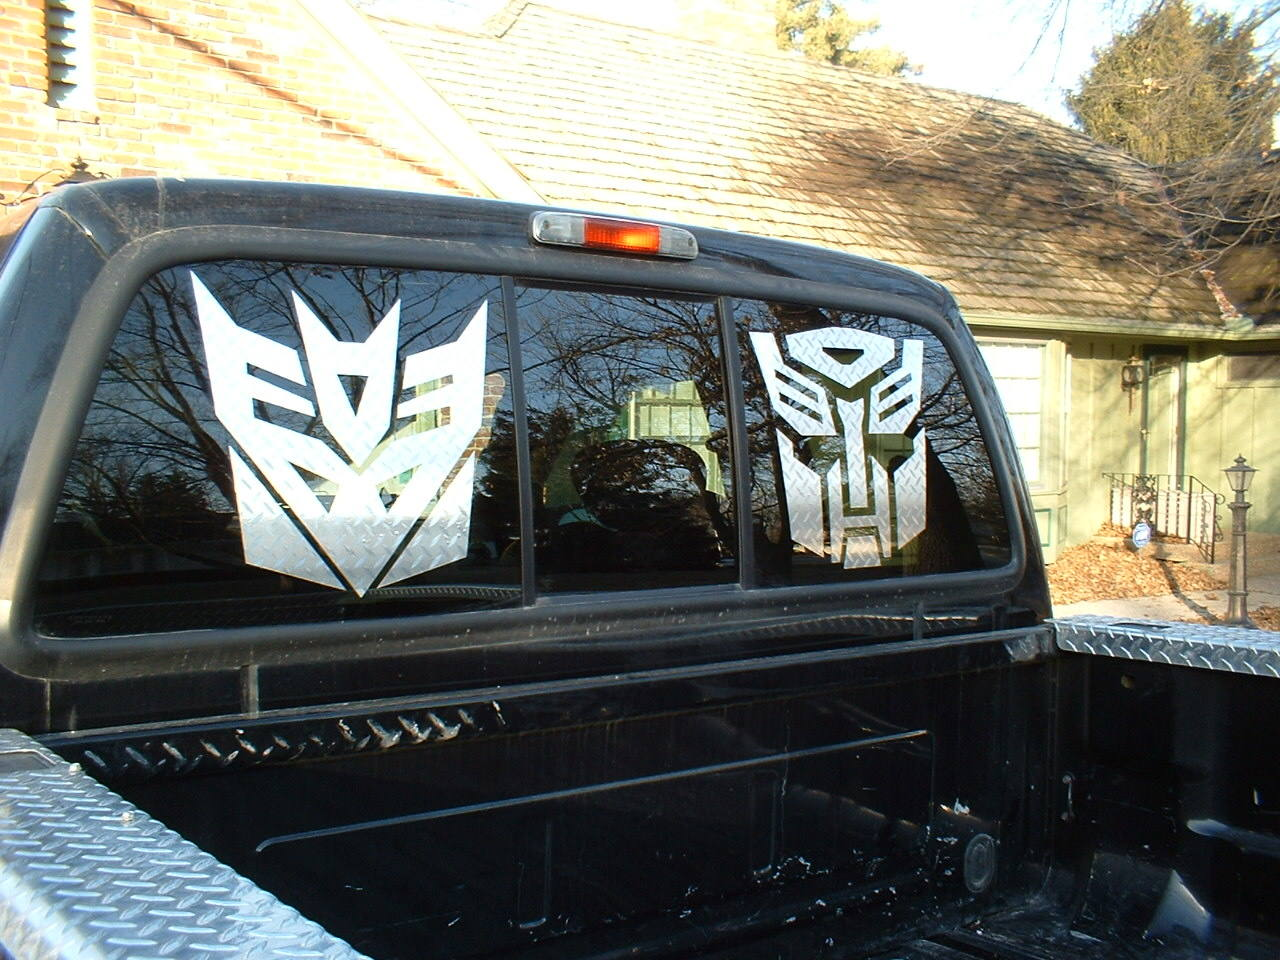 Comic Decals And Cartoon Decals Transformers Decepticon Decal - Window decals for cars and trucksdecals stickers vinyl decals car decals general